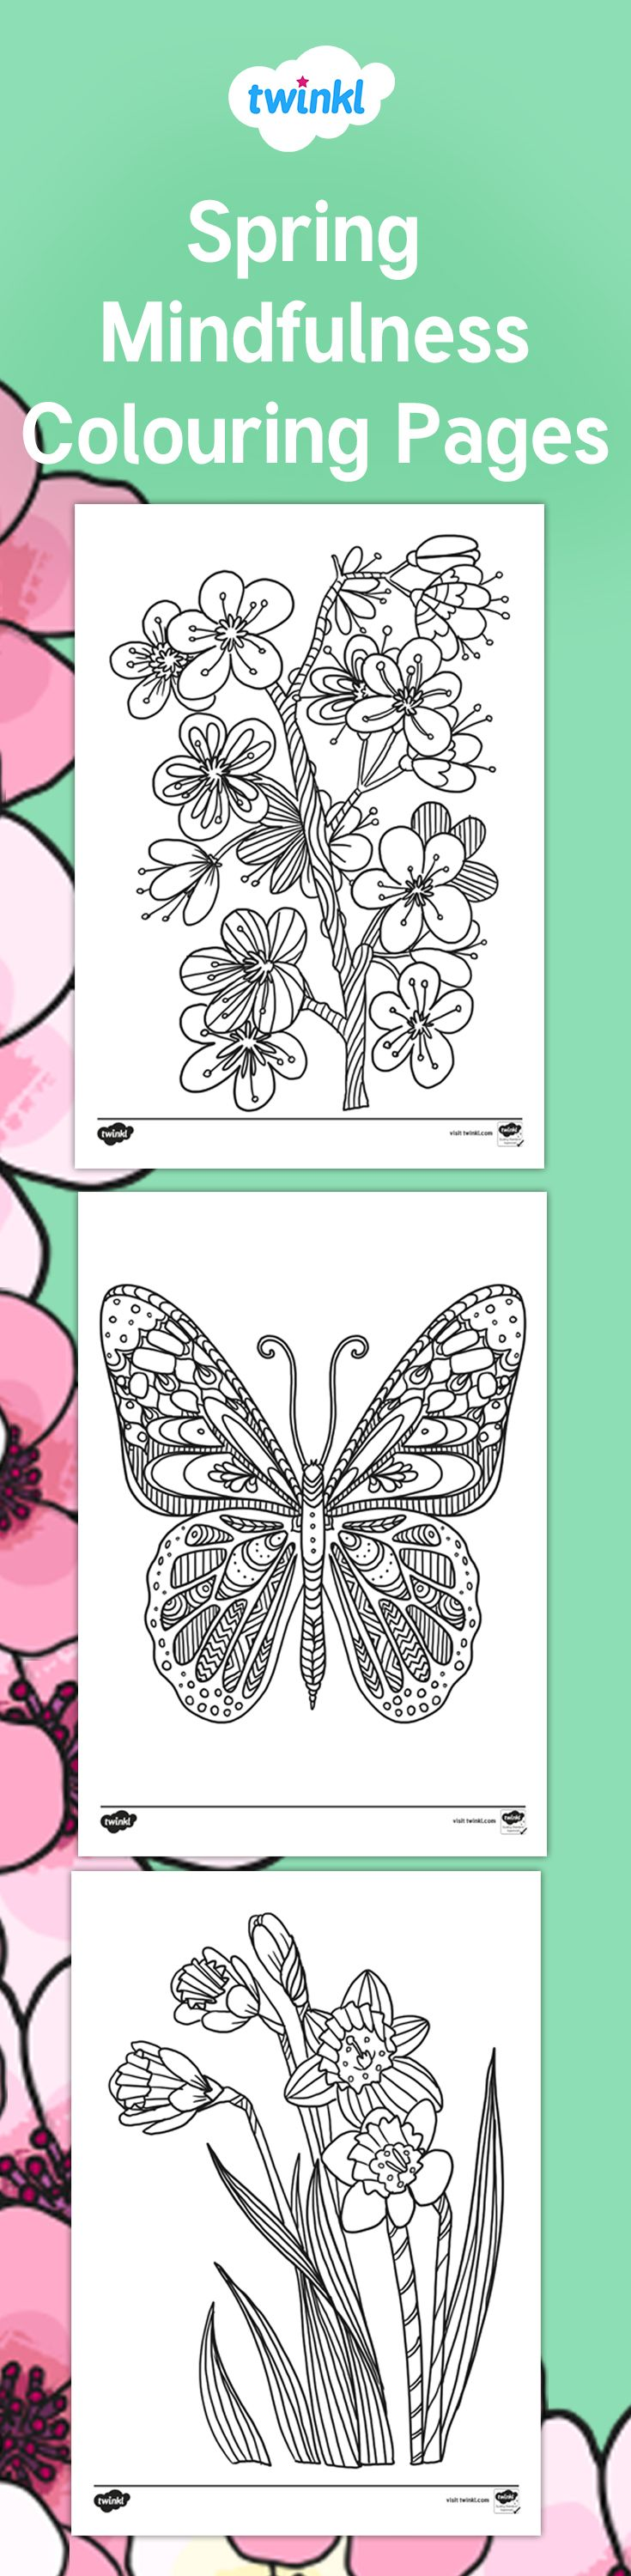 Spring Mindfulness Colouring Pages Mindfulness Colouring Colouring Pages Spring Resources